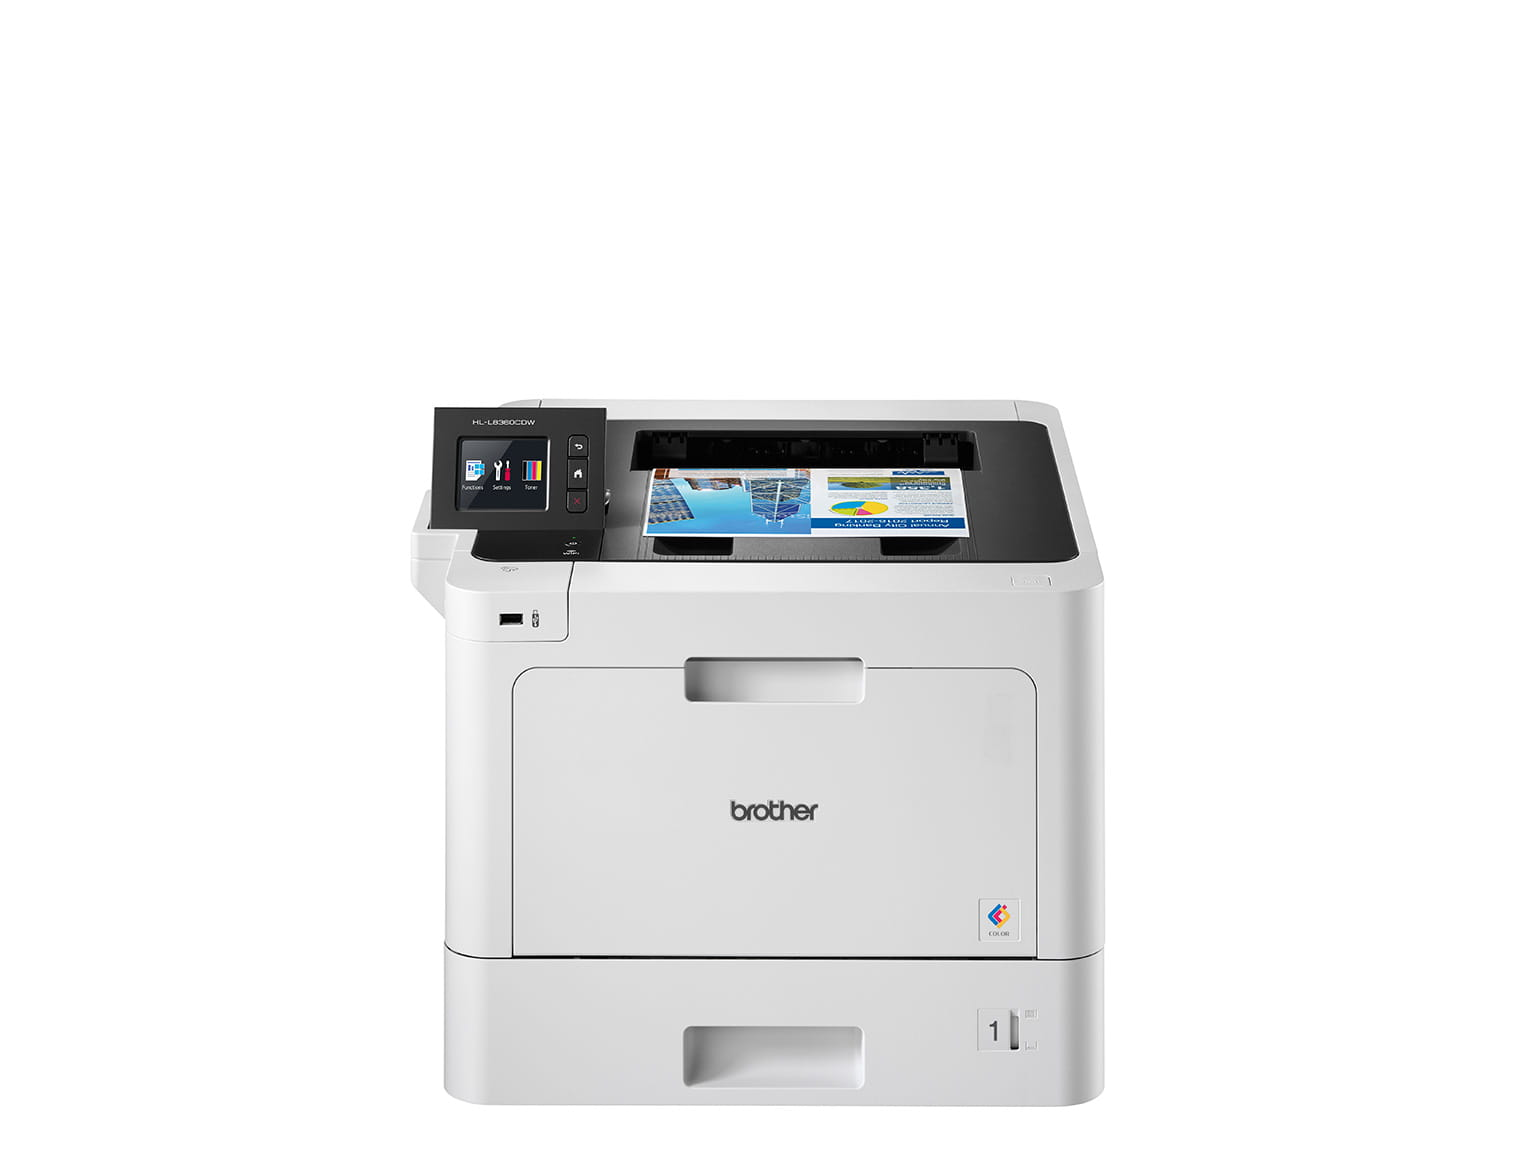 print-only-brother-printer